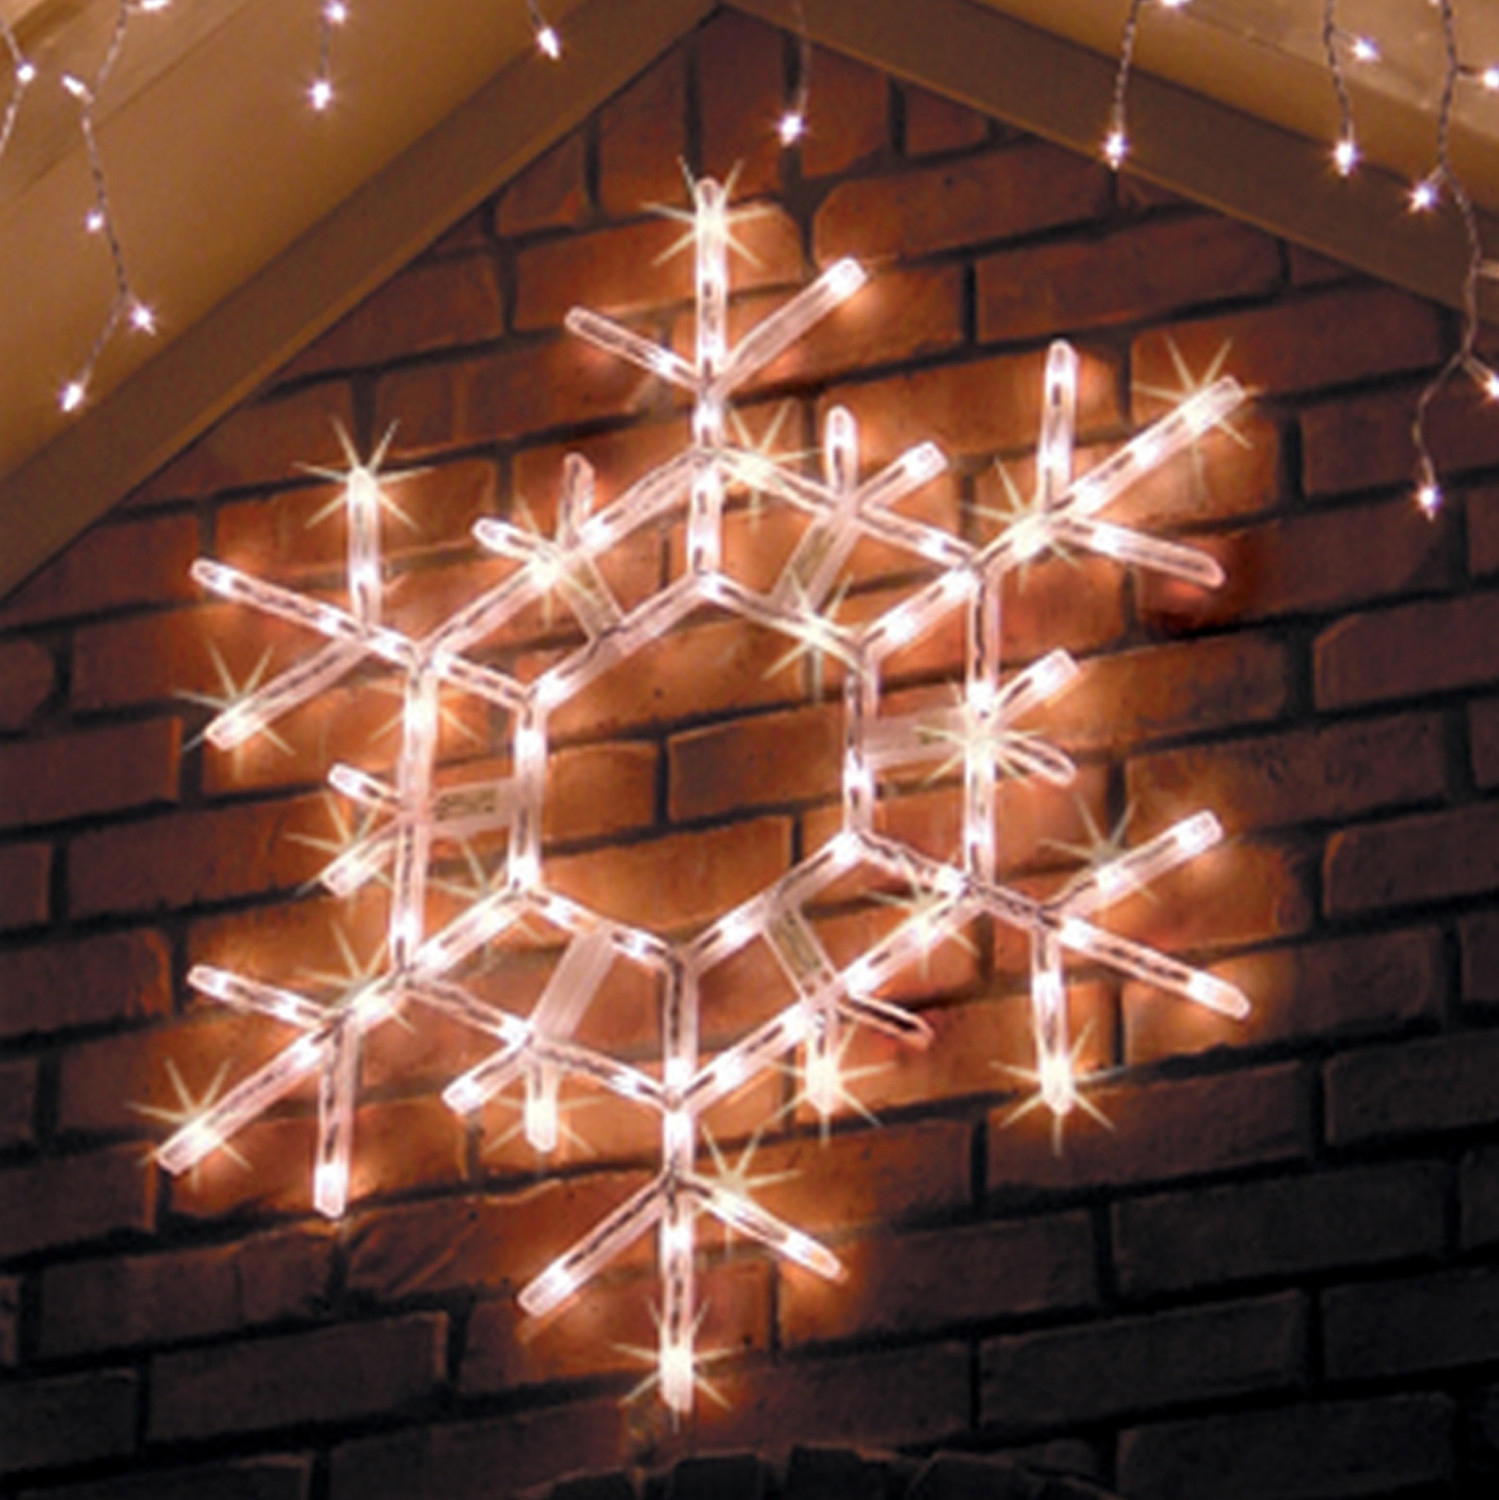 Lighted Outdoor Yard Decorations | Yard Decorations, Snowflake Within Outdoor Hanging Ornament Lights (#11 of 15)